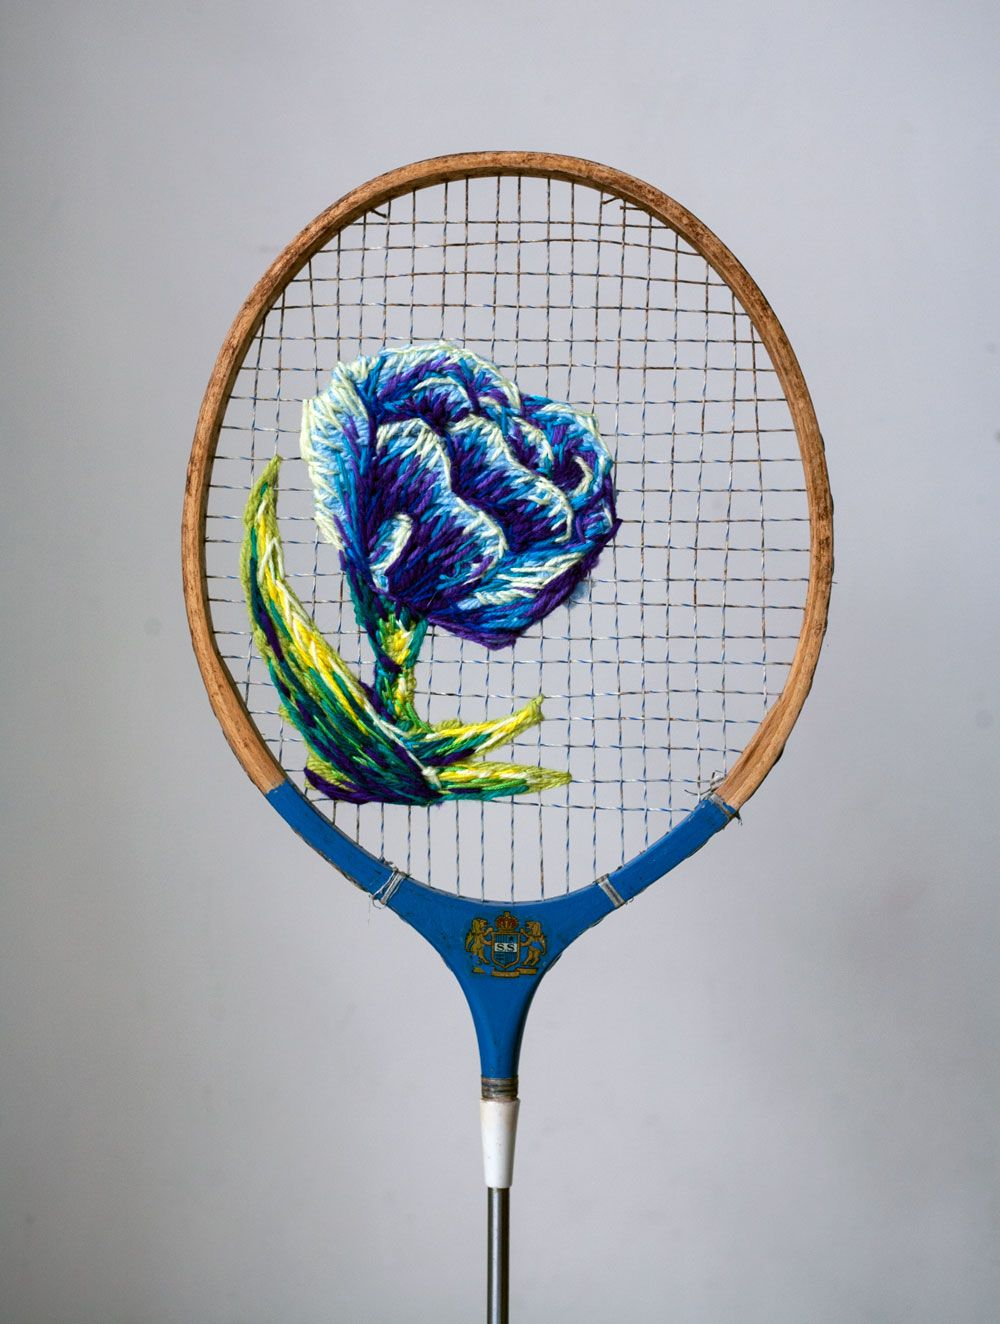 Flowers Embroidered On The Strings Of Vintage Rackets And Other Thread Artworks By Danielle Clough Embroidery Art Fiber Art Paper Embroidery